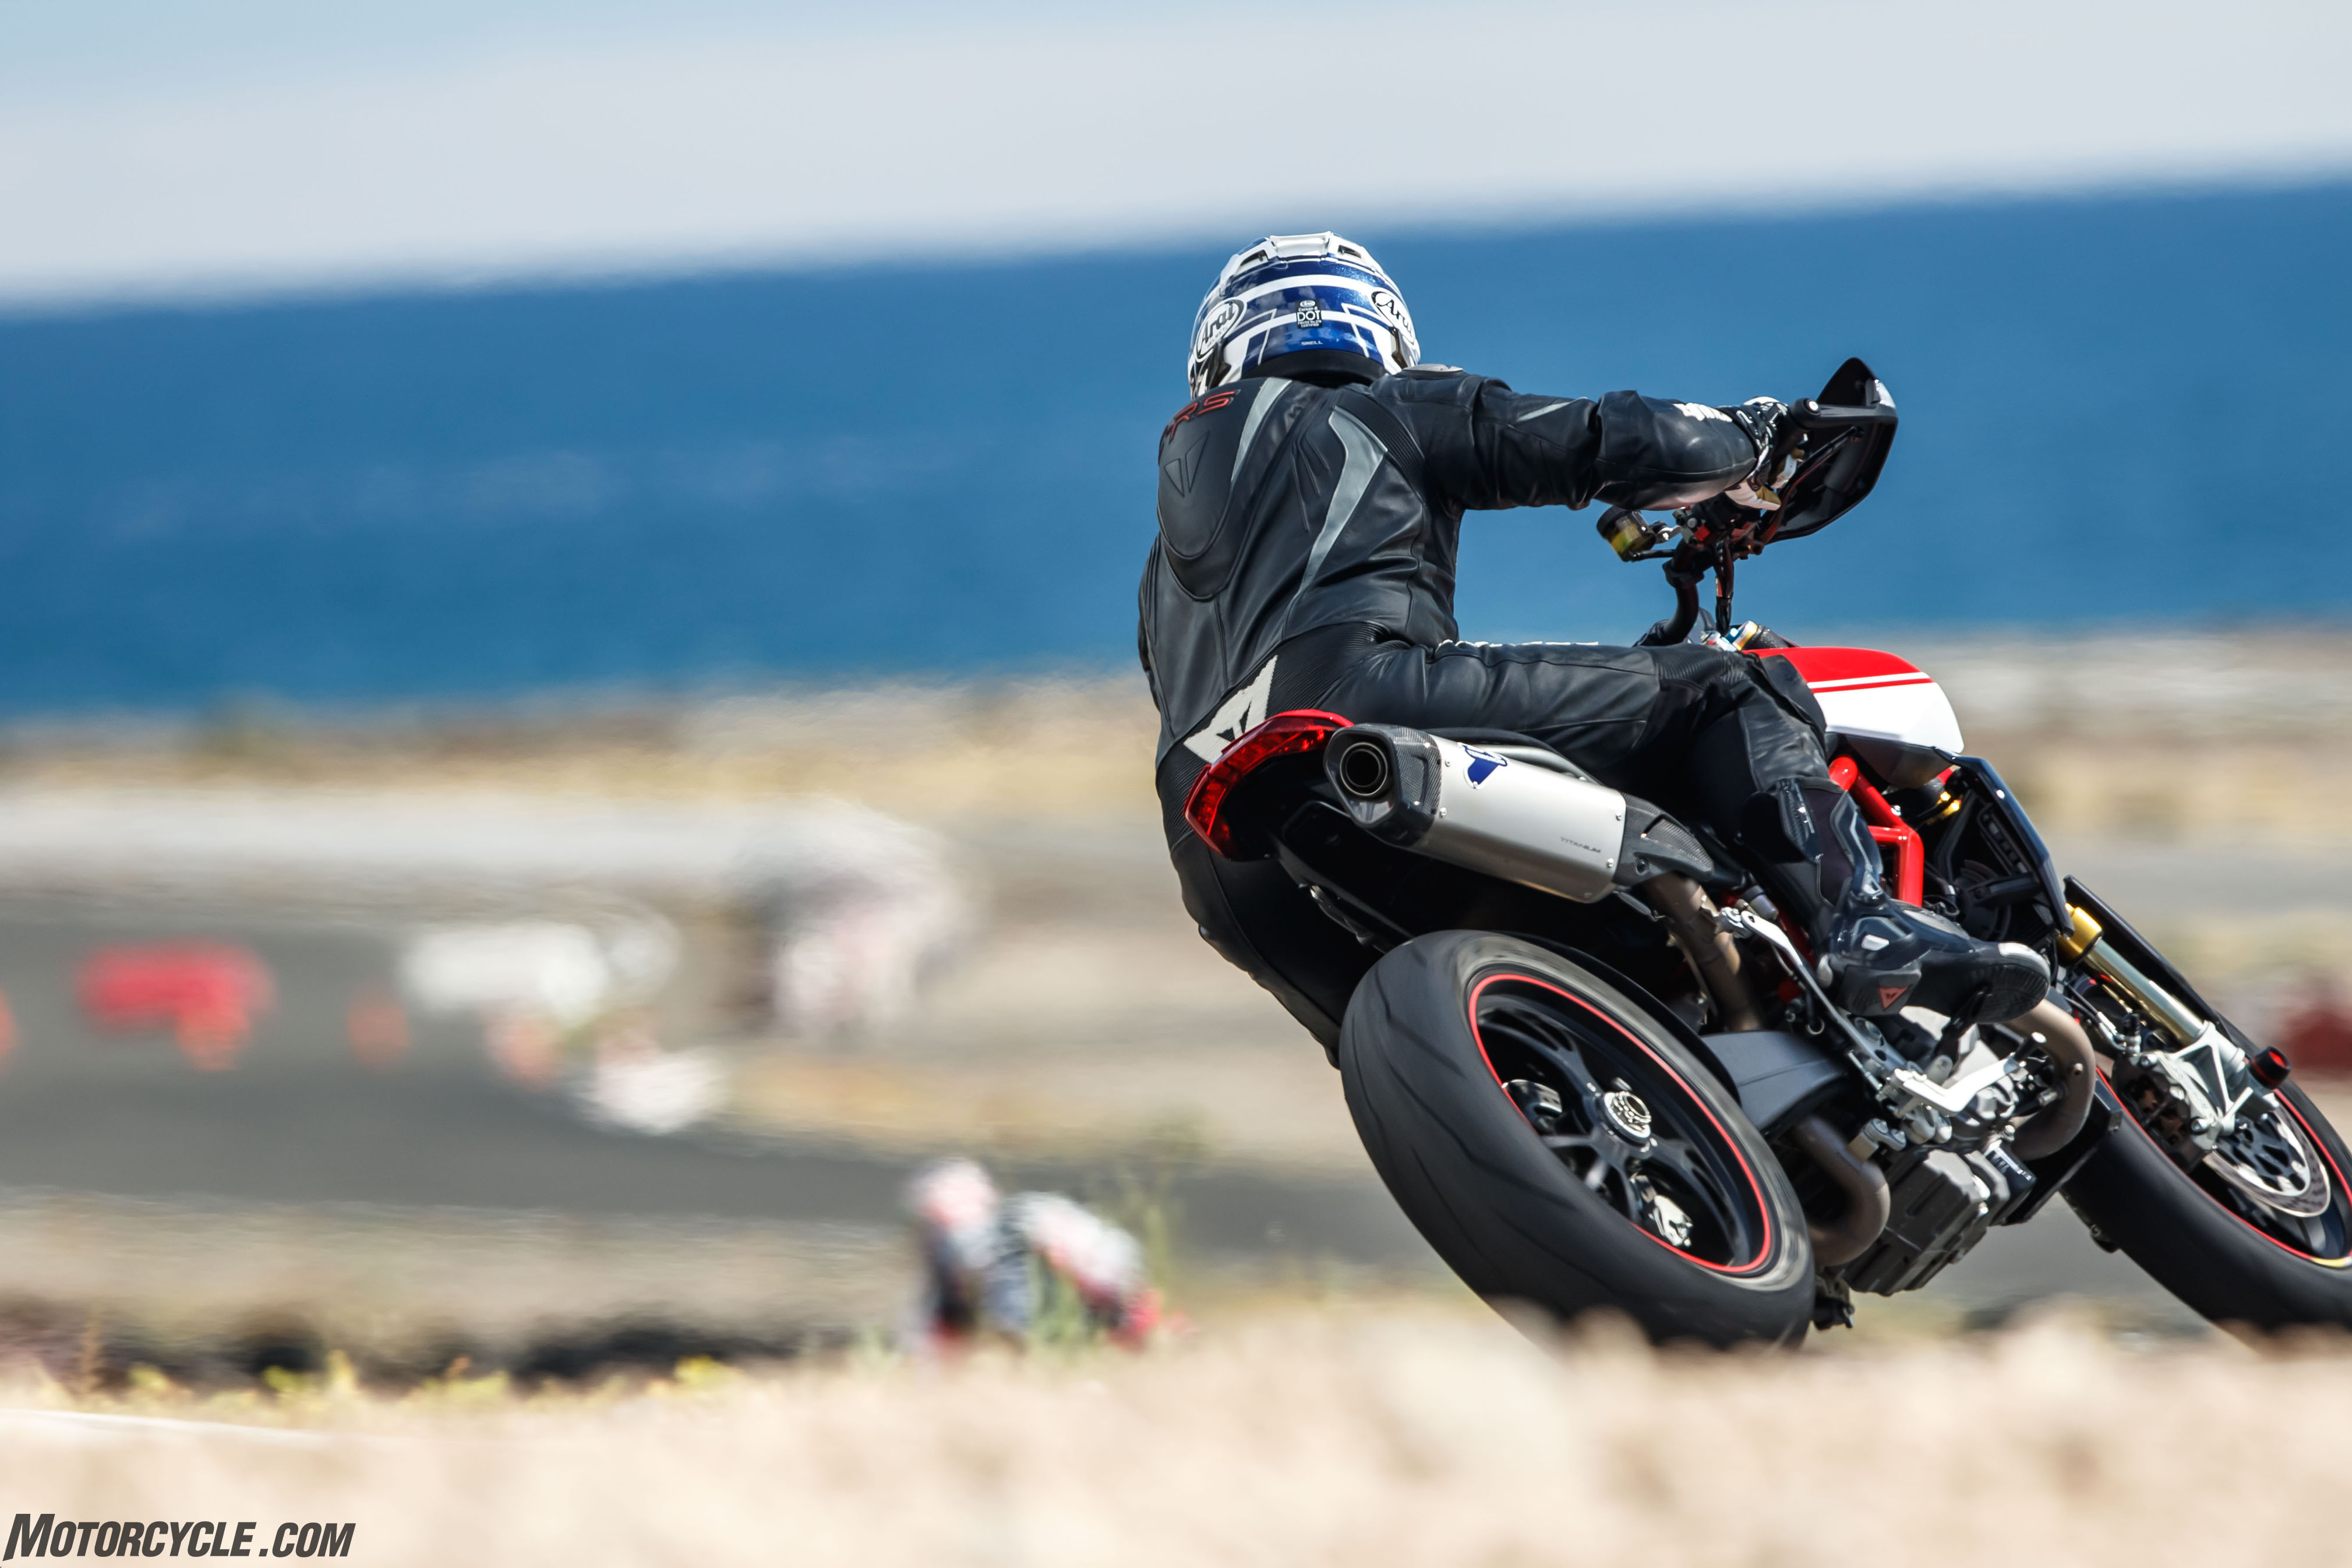 2019 Ducati Hypermotard 950/950 SP First Ride Review - Motorcycle com